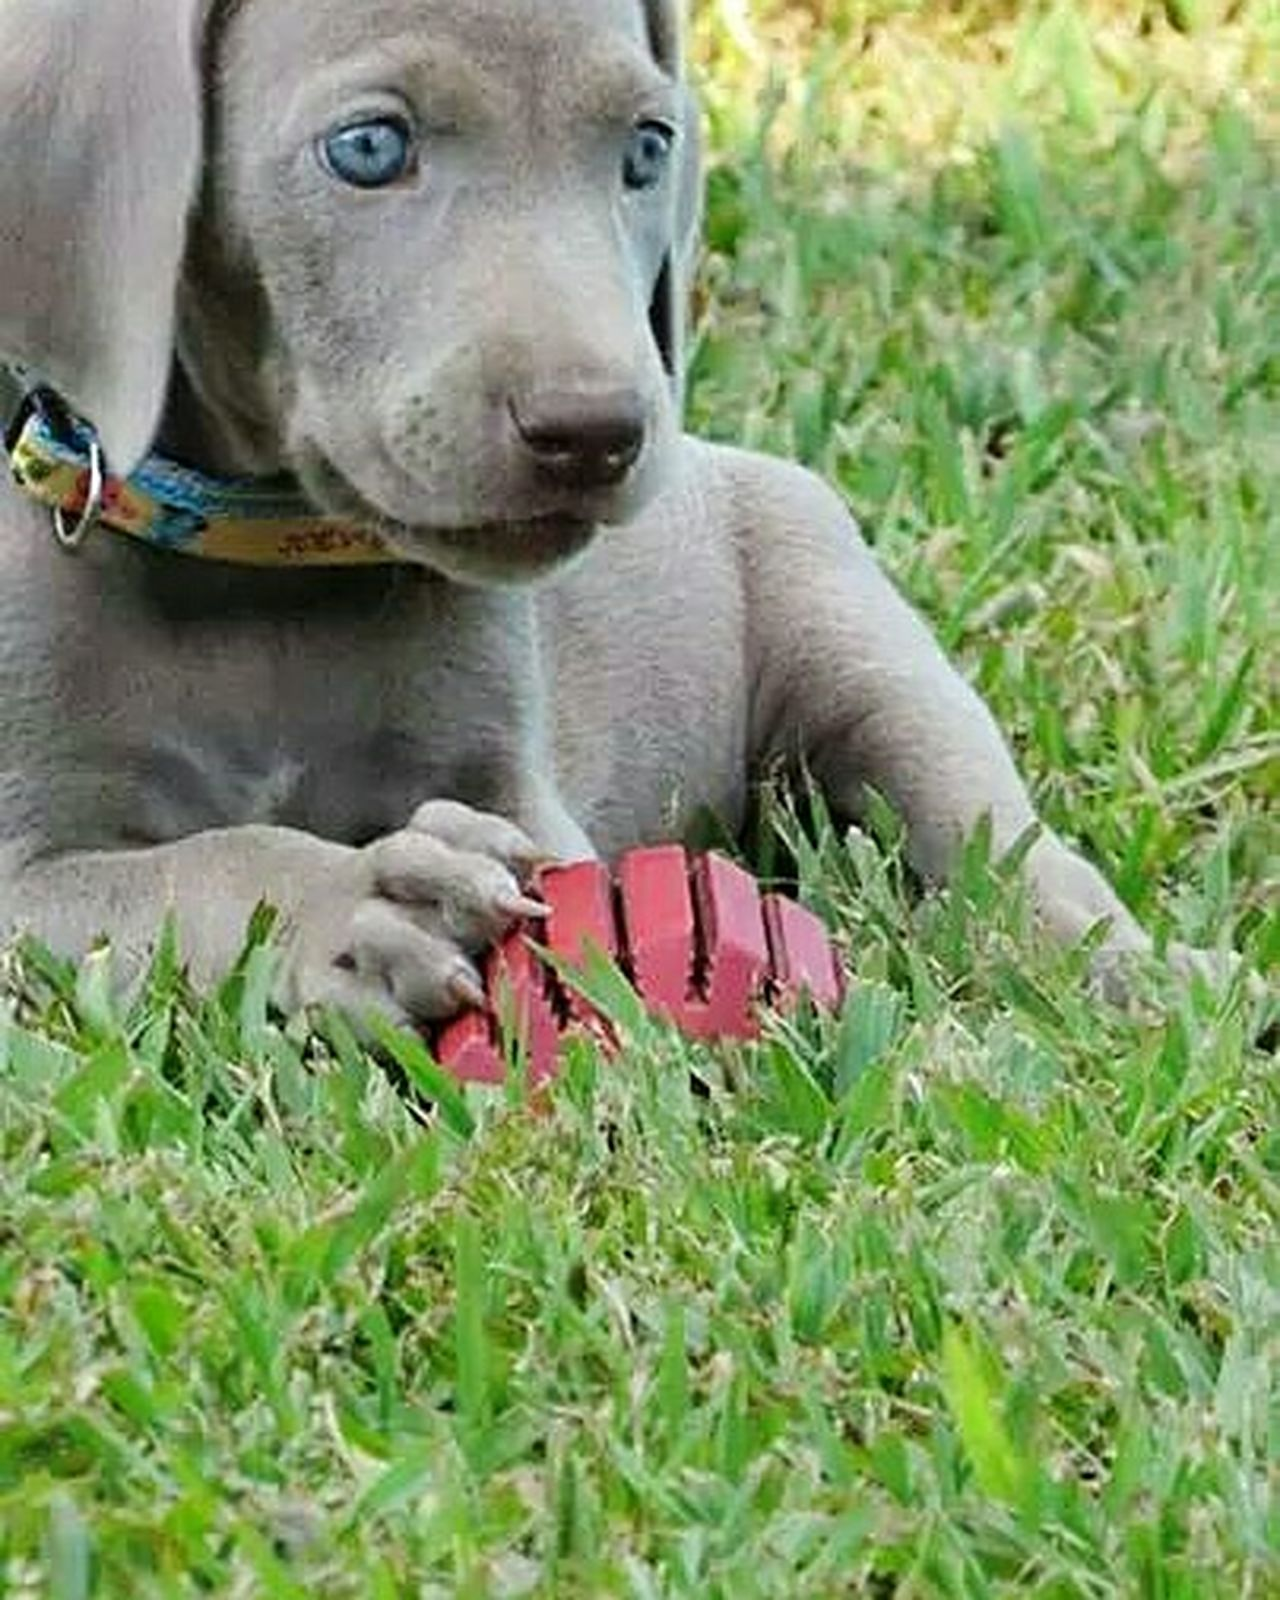 Weimaraner Puppy Mammal One Animal Animal Themes Pets Domestic Animals Grass Dog Looking At Camera Close-up Outdoors Portrait No People Day